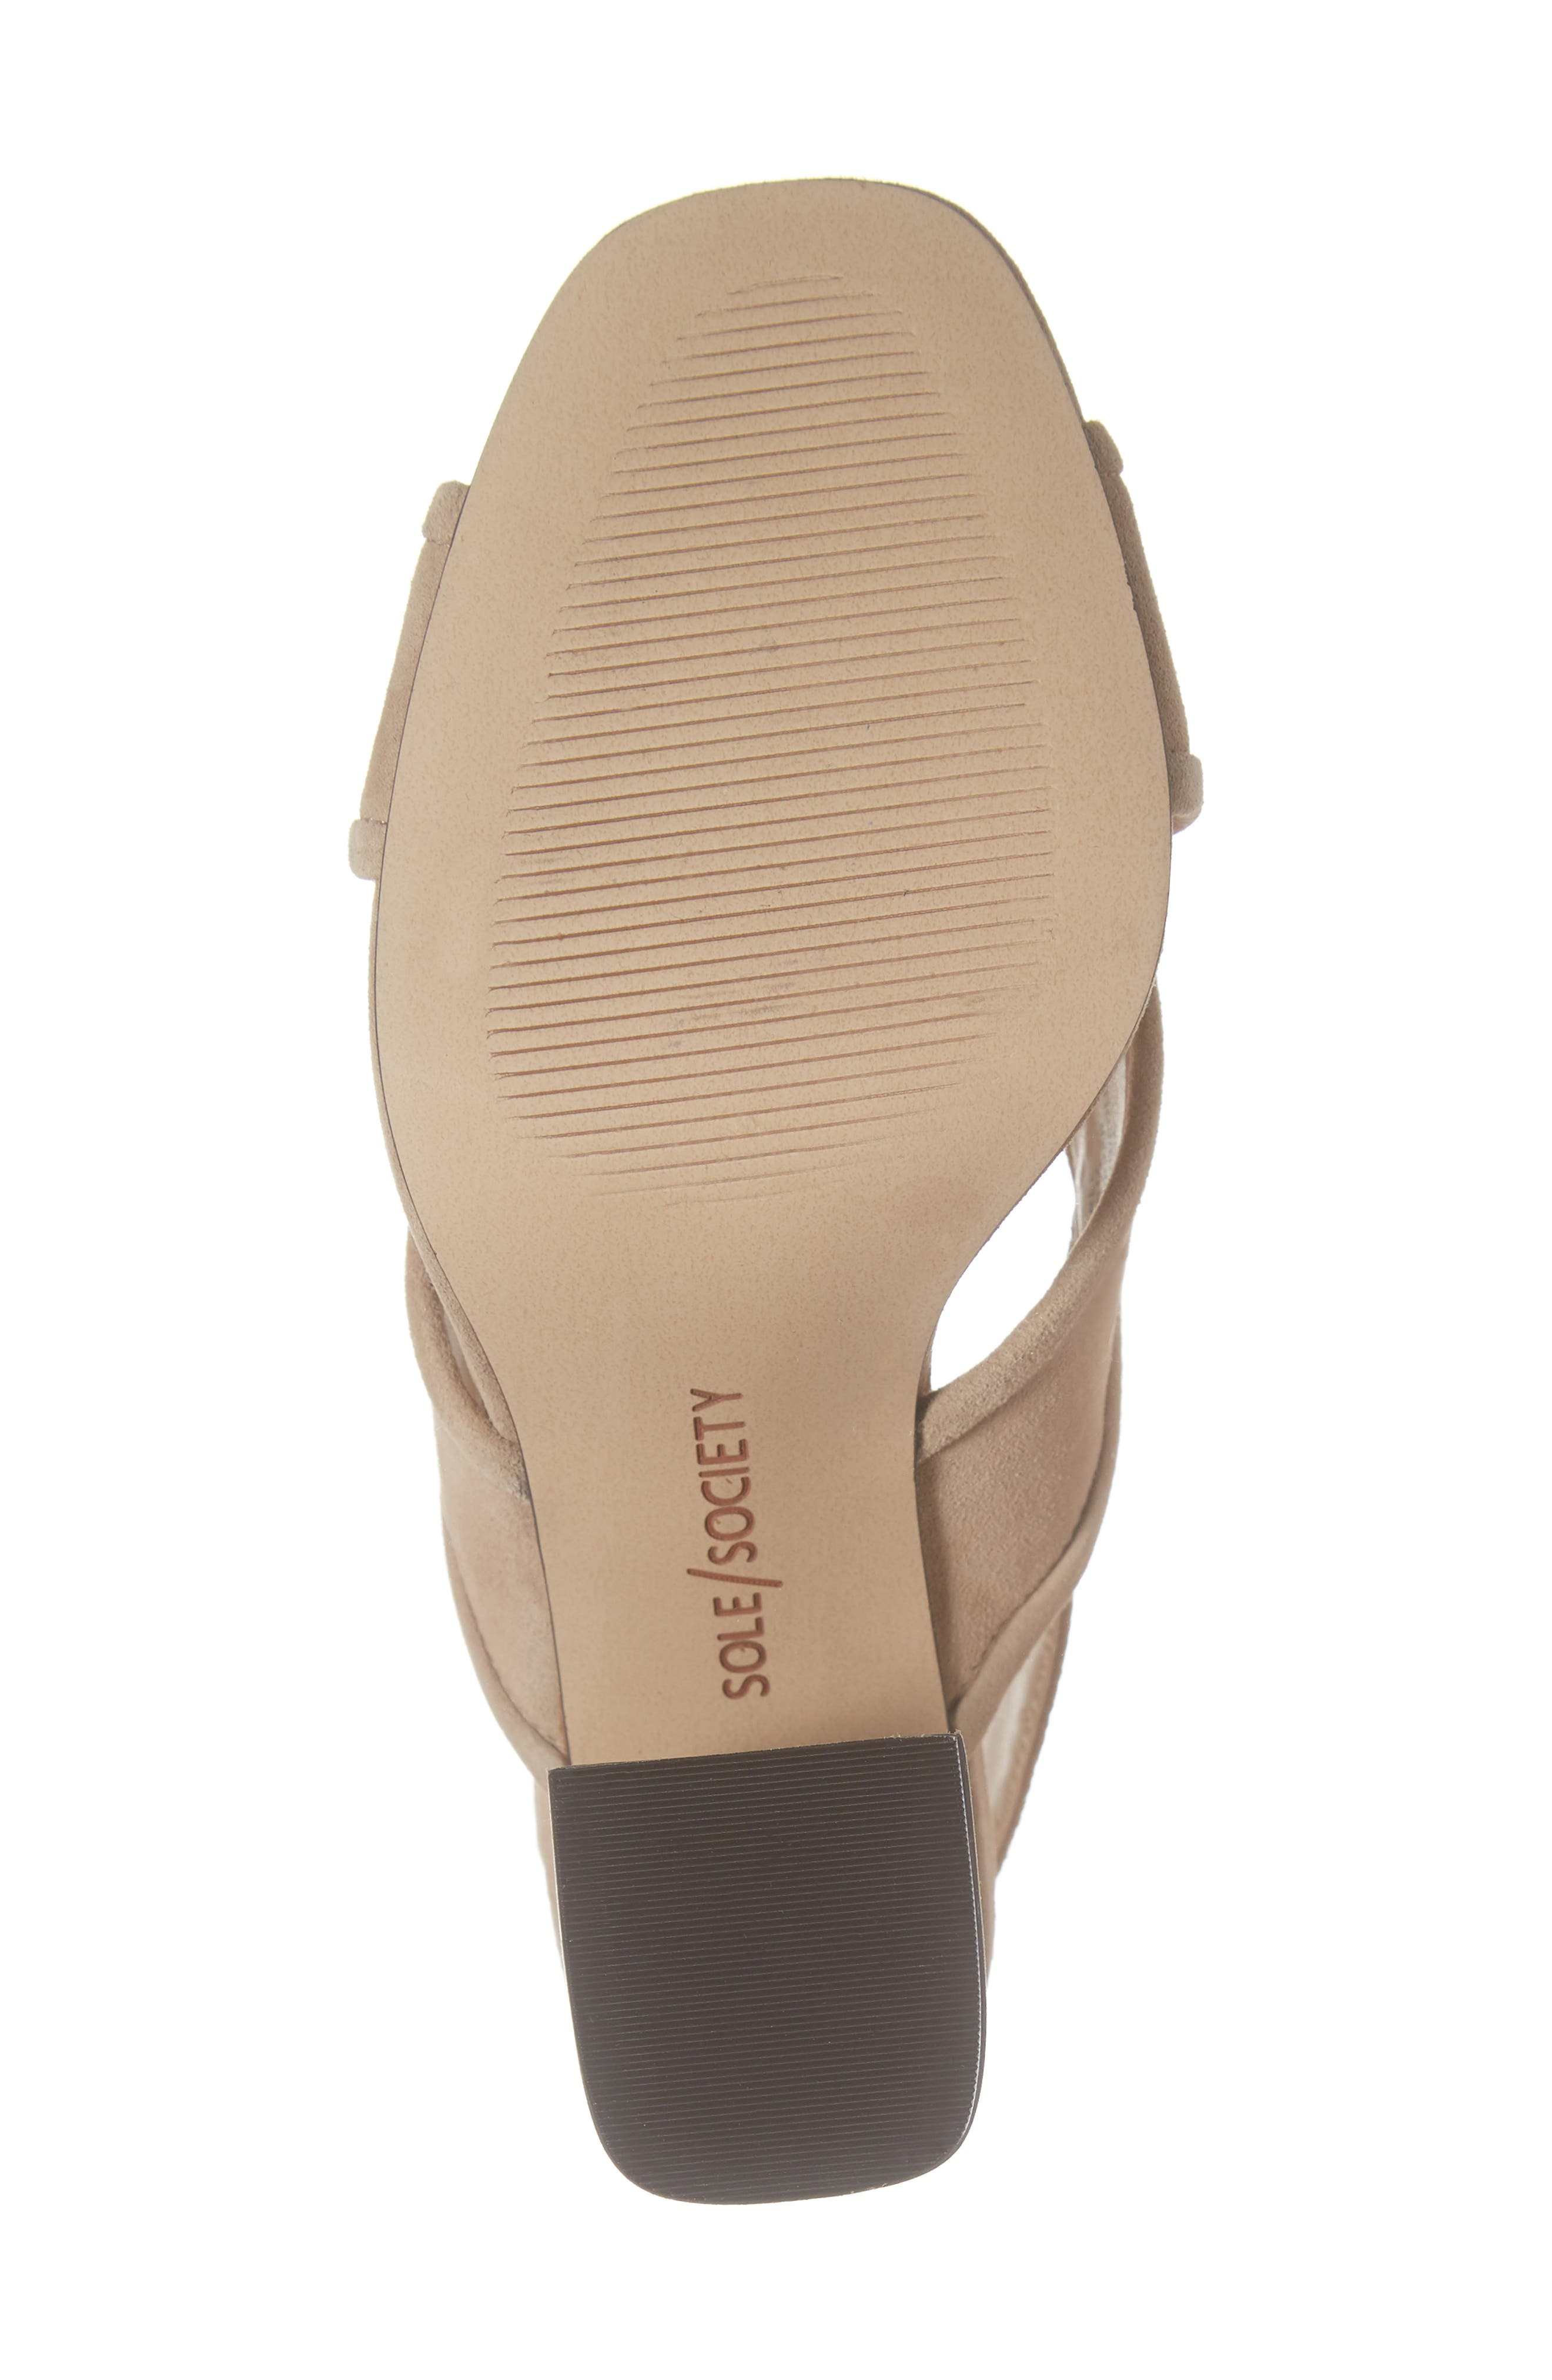 SOLE SOCIETY, Joree Slingback Sandal, Alternate thumbnail 6, color, DUSTED TAUPE SUEDE